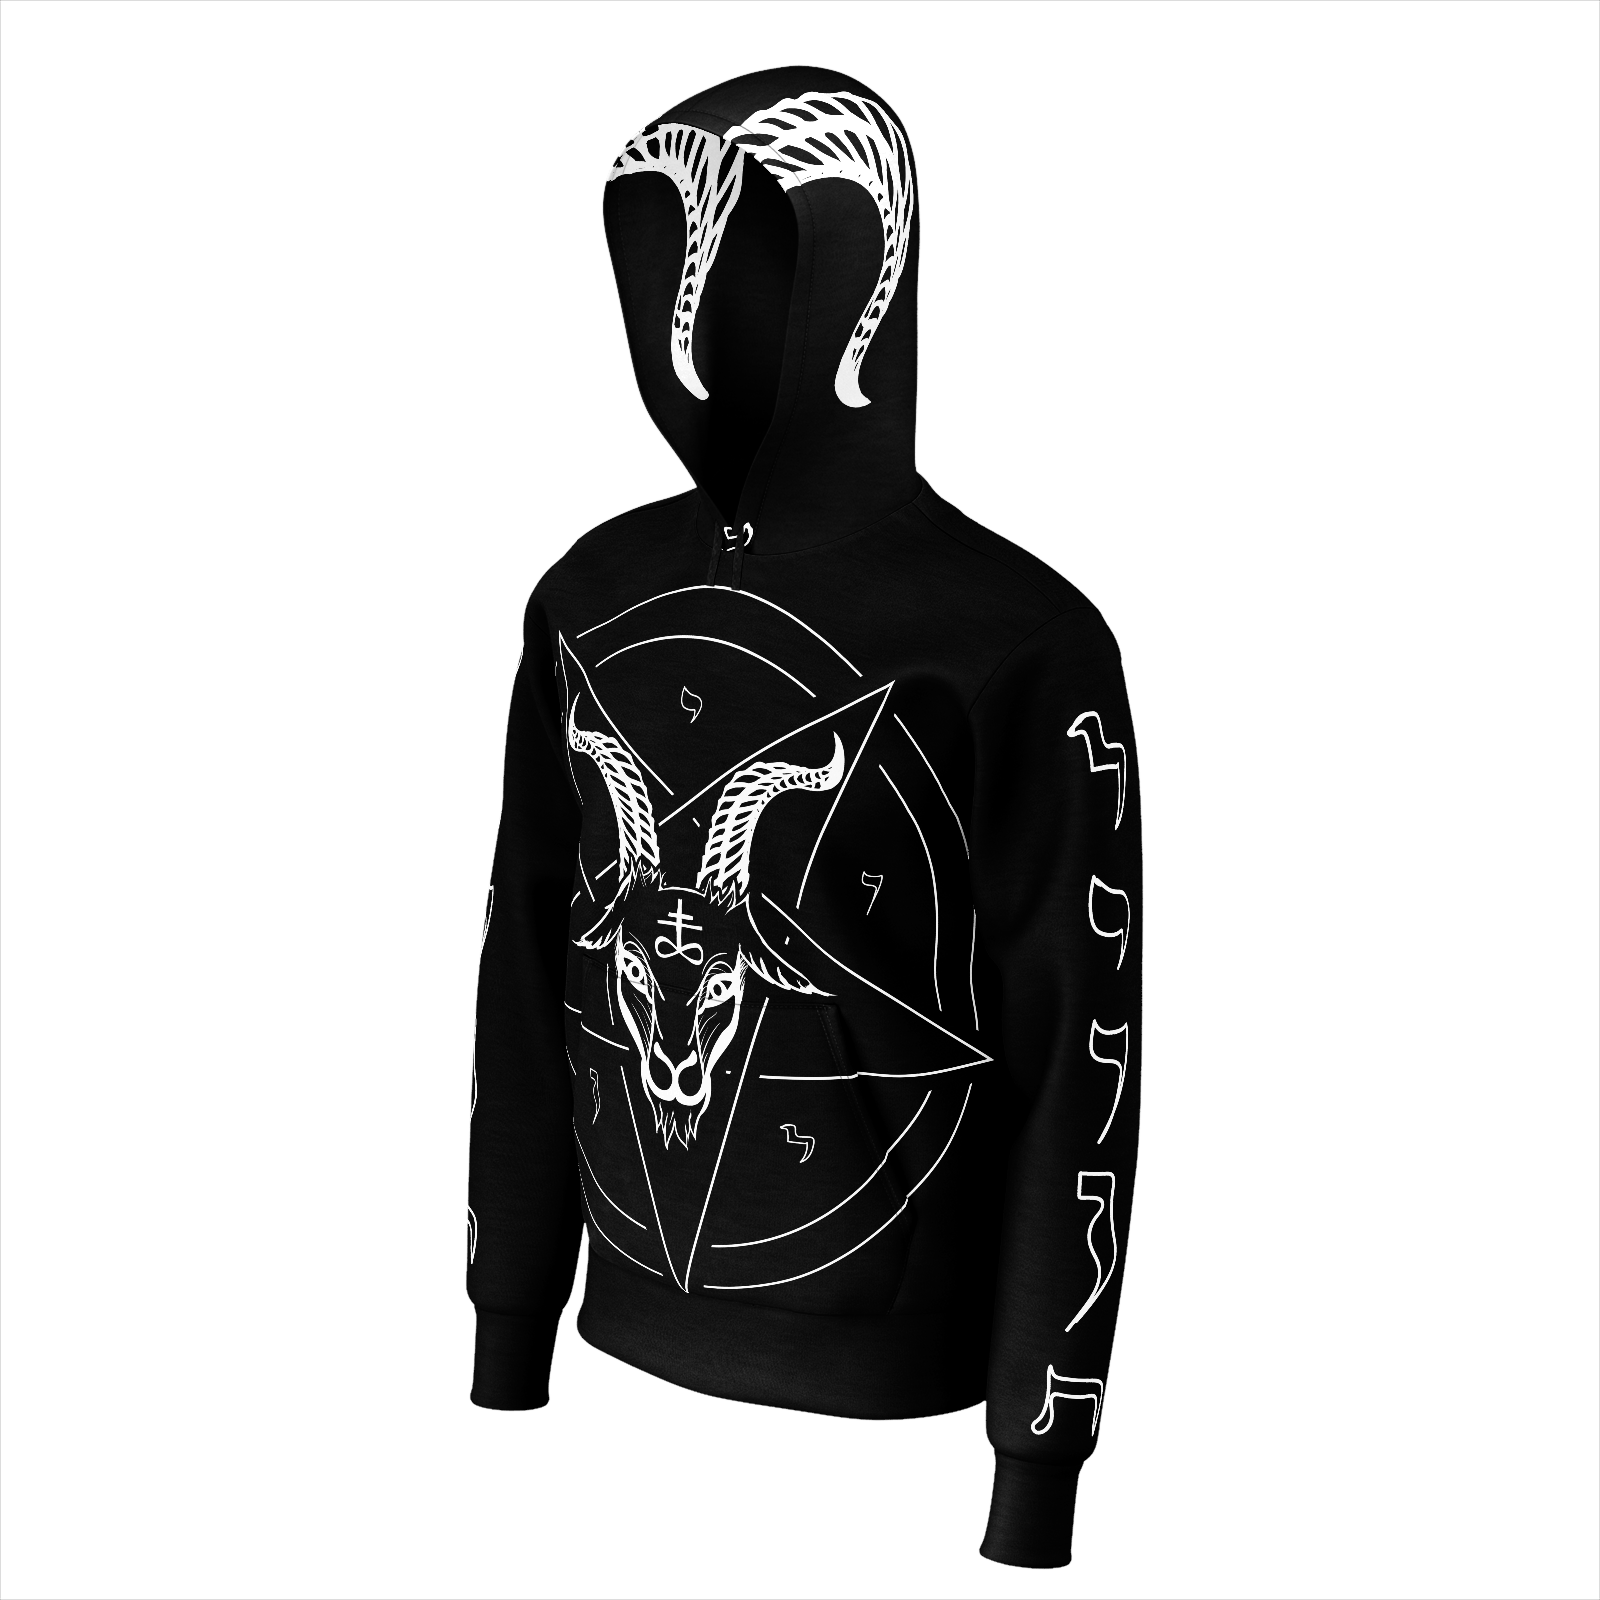 Baphomet Pentagram Sigil of Lucifer Satanic Symbols Hoodie with Horns - Logikal Threads